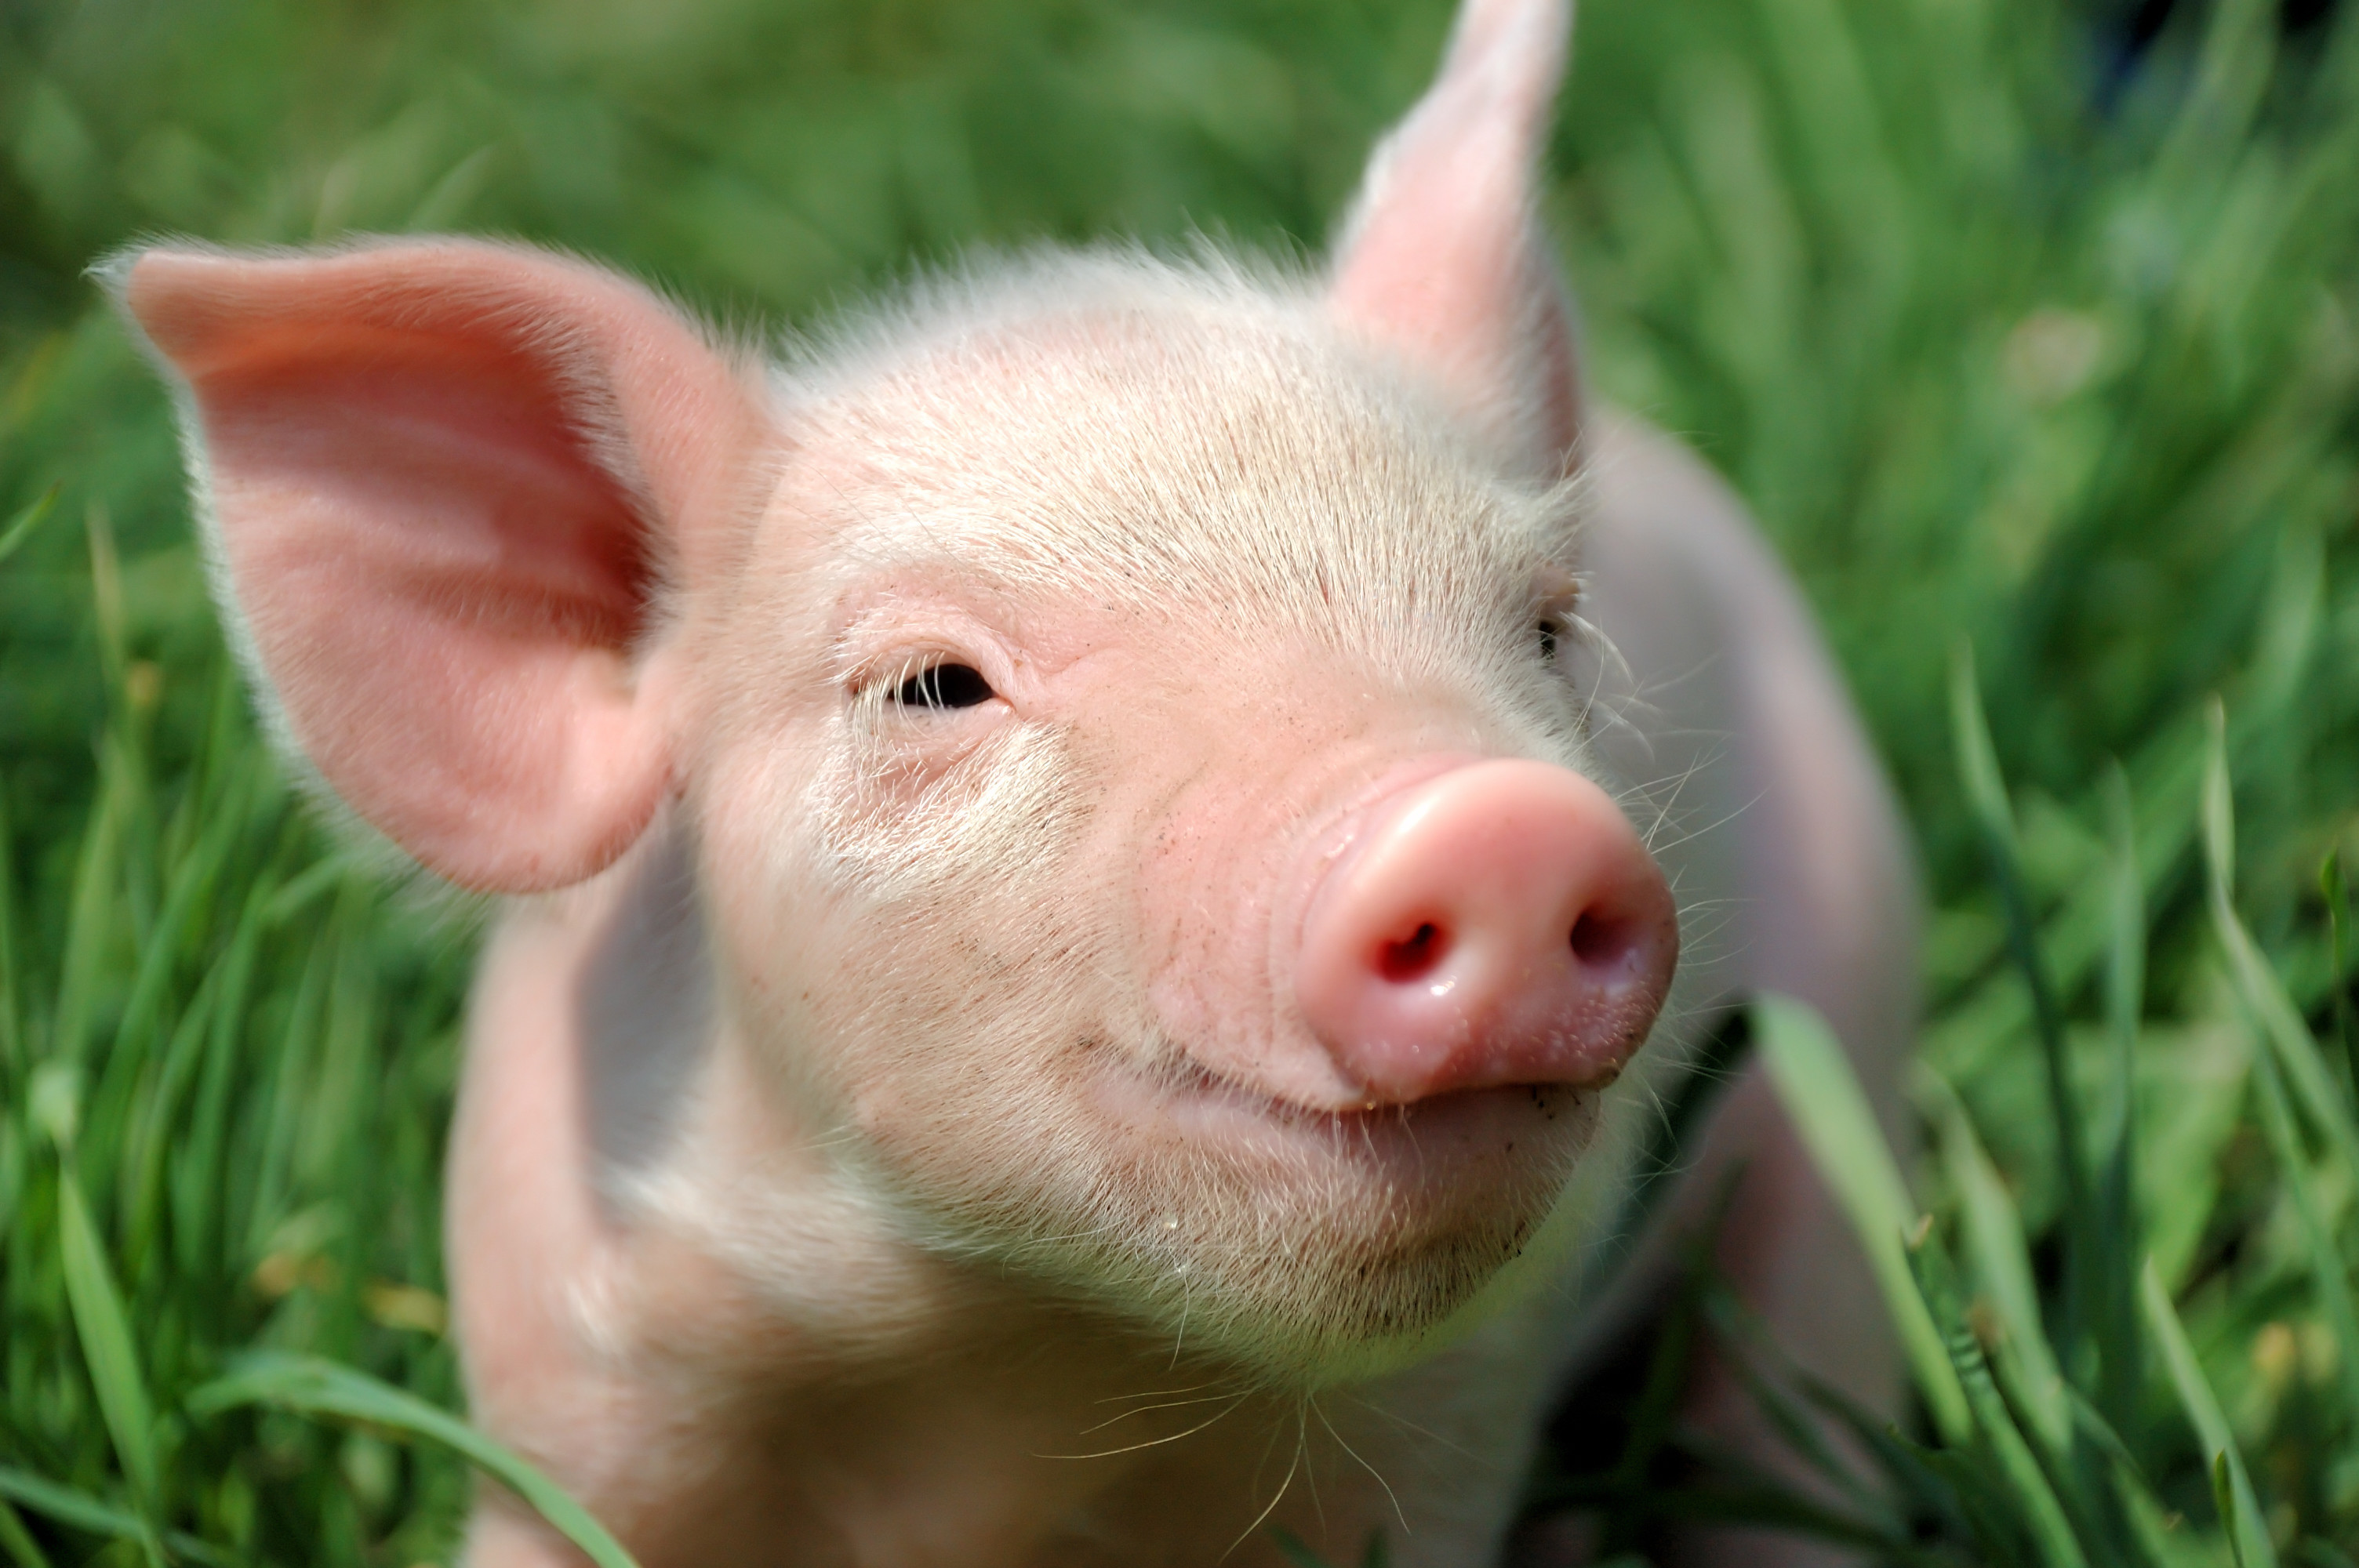 Res: 3008x2000, Pigs images HD wallpaper and background photos